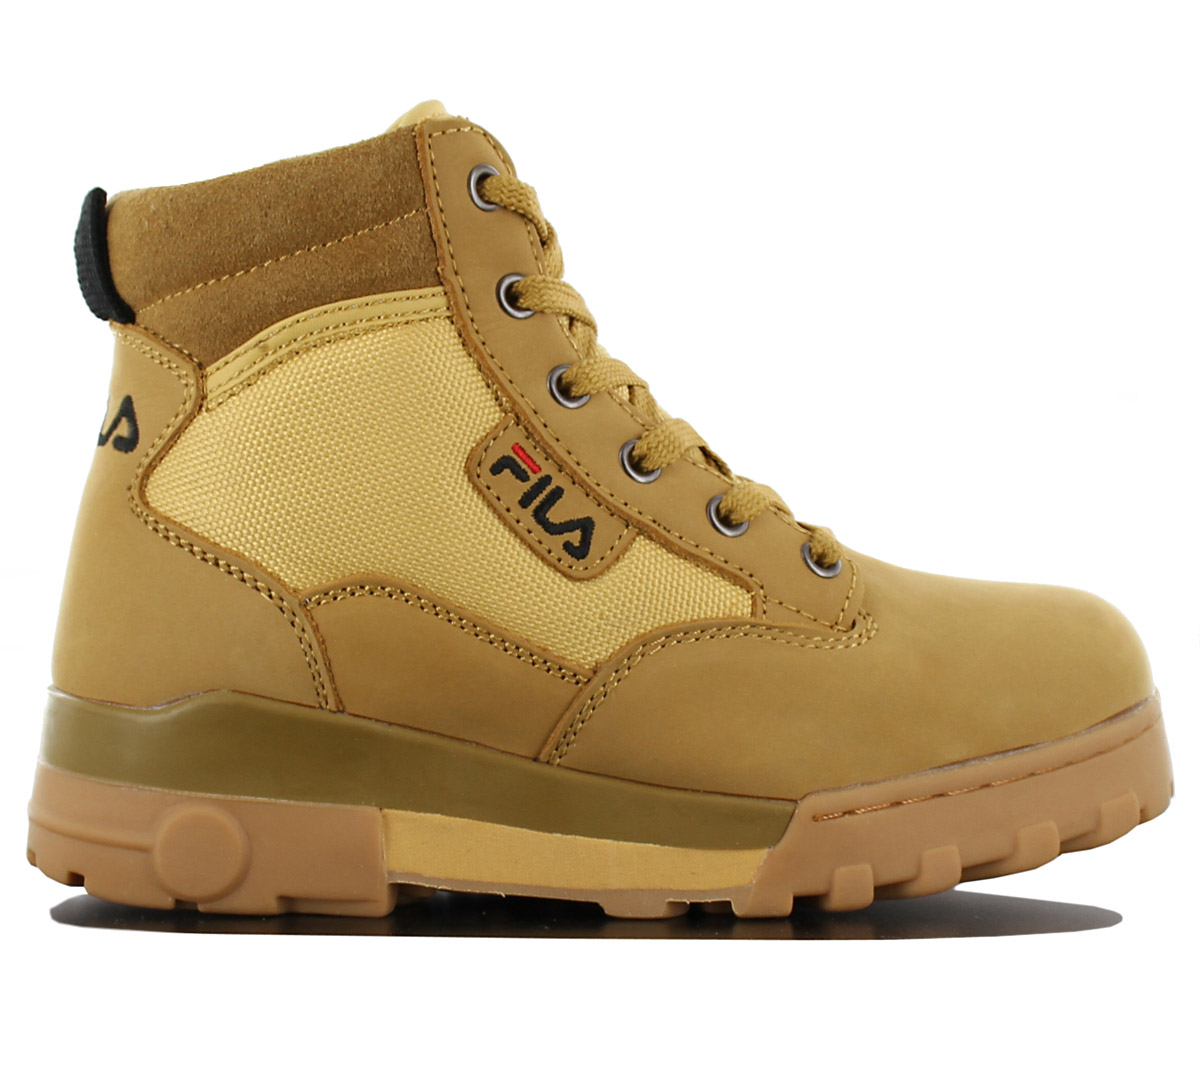 06ceda0134 Details about Fila Grunge mid Women's Ladies Winter Boots Shoes Leather  4010281.EDU Chipmunk